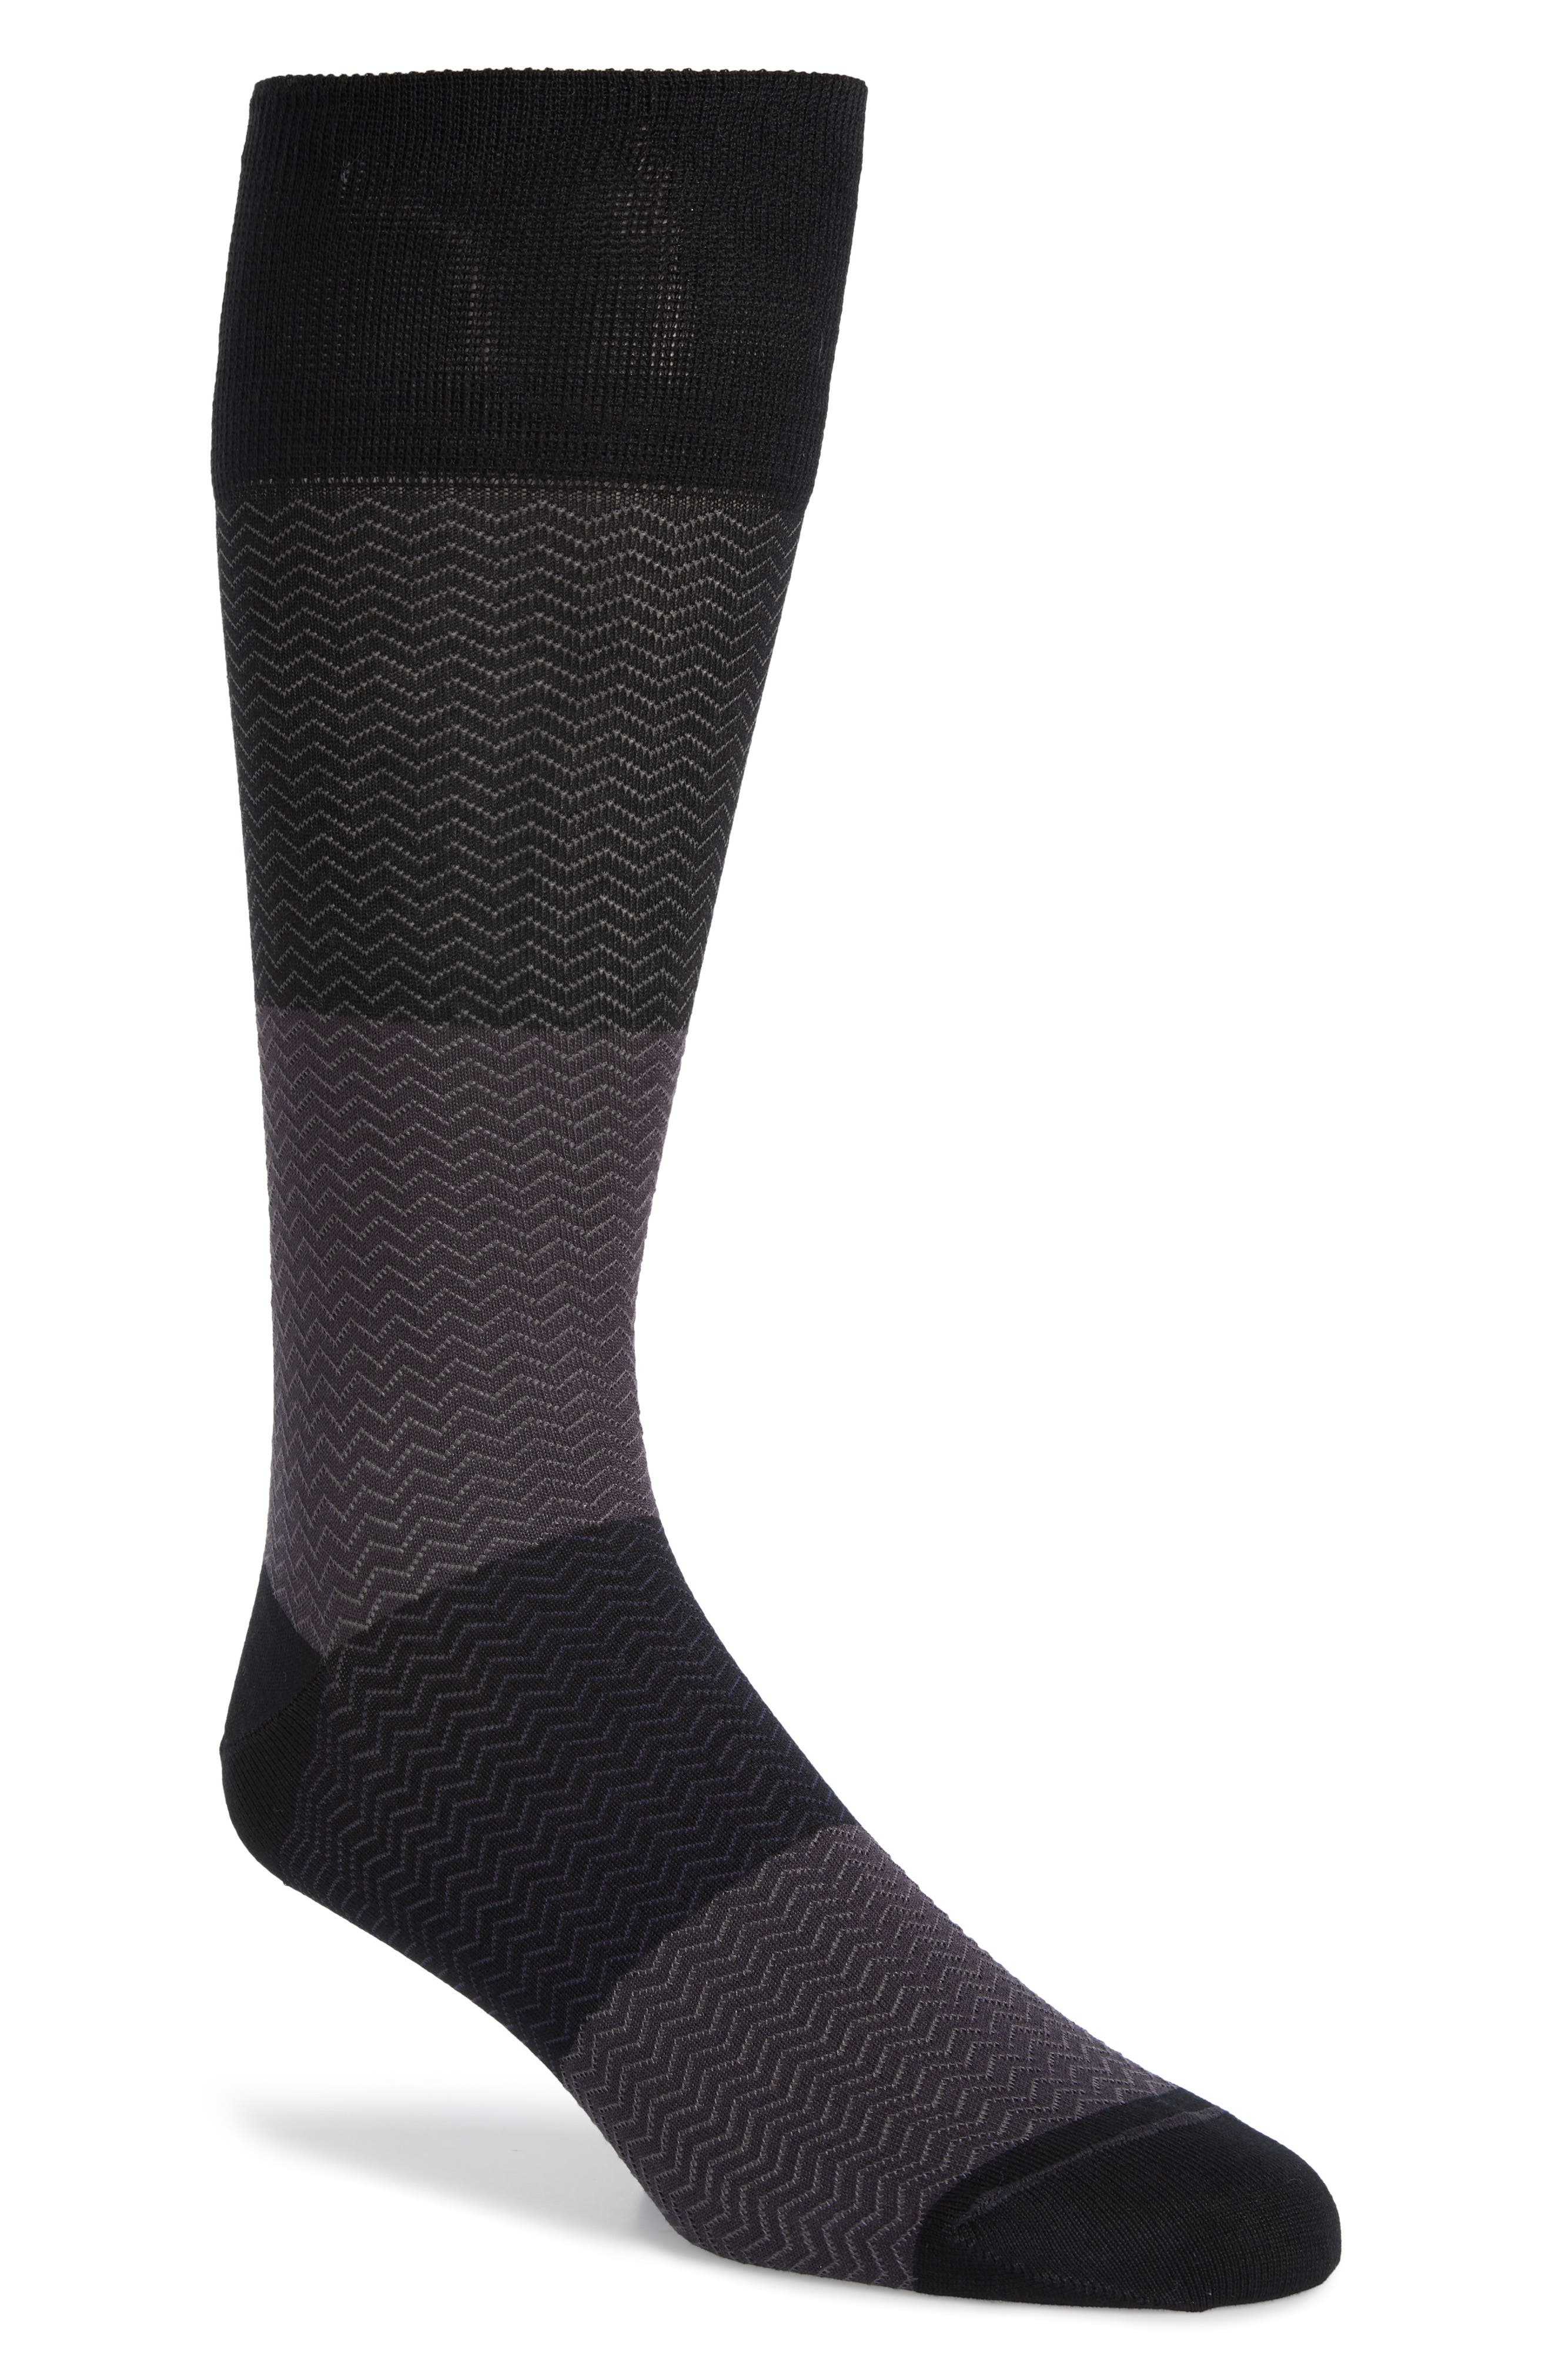 Gradient Herringbone Socks,                             Main thumbnail 1, color,                             BLACK/ GREY